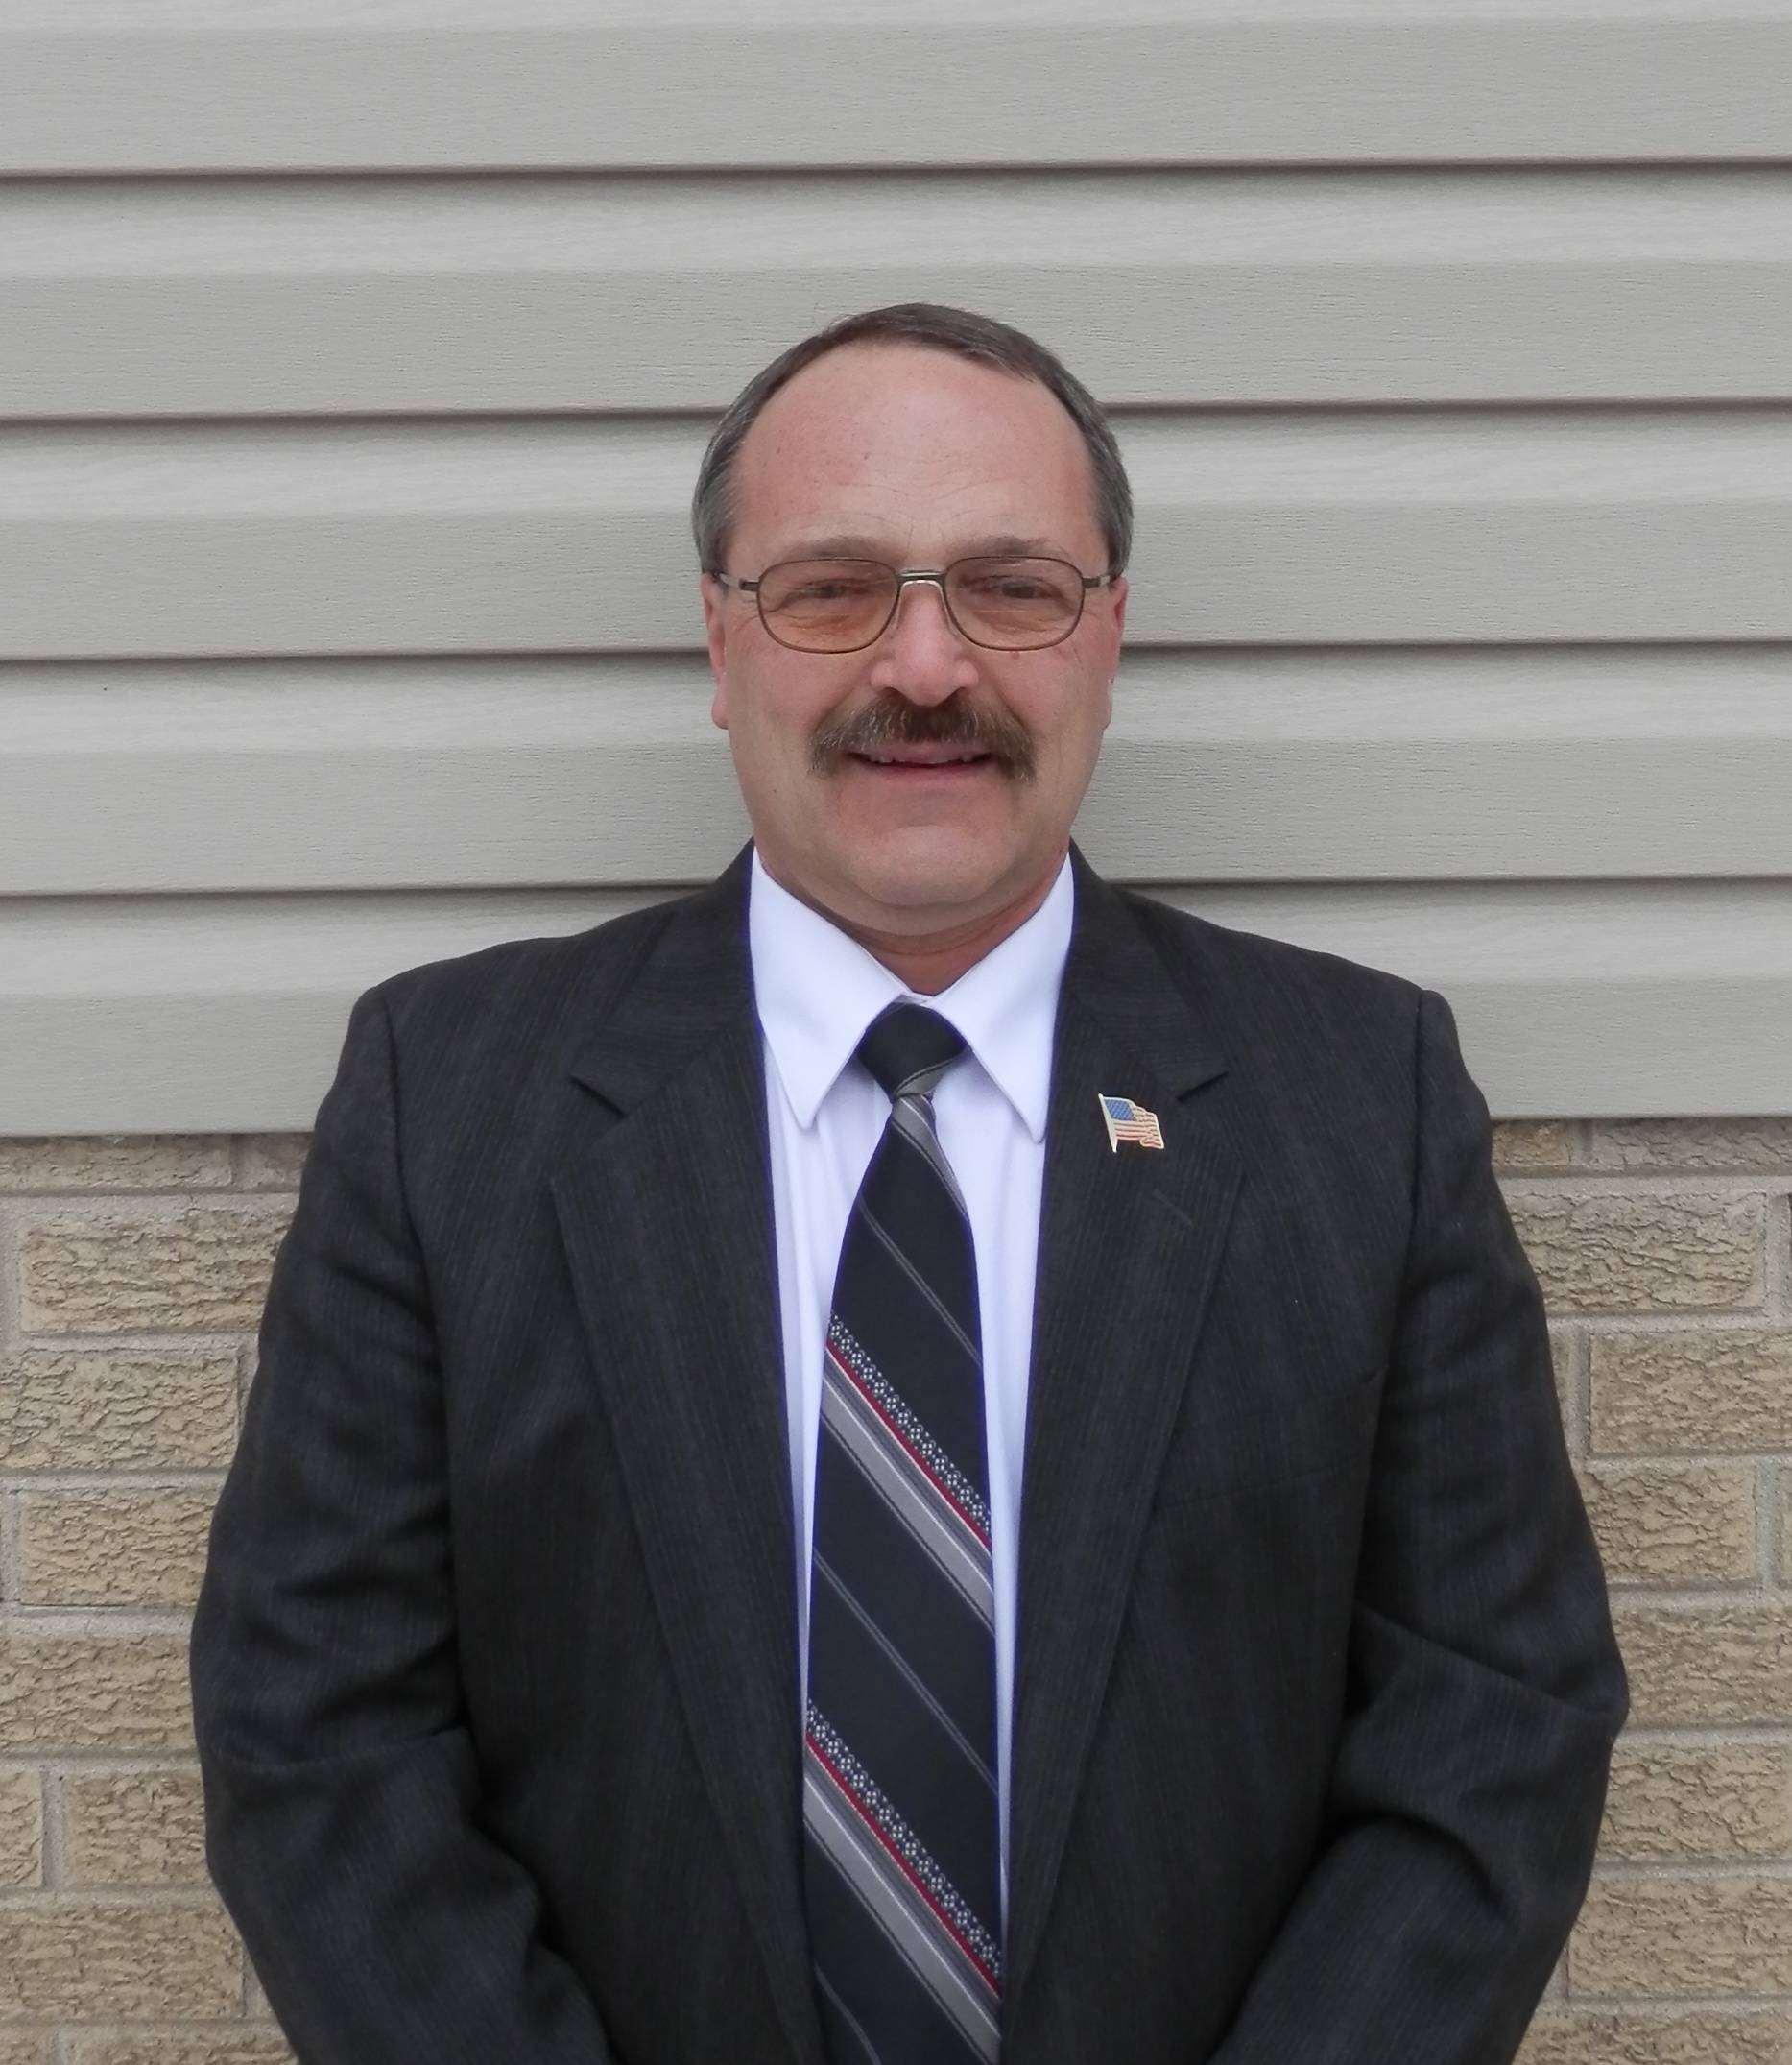 James Wozny, running for Maine Township Board (4-year Terms)